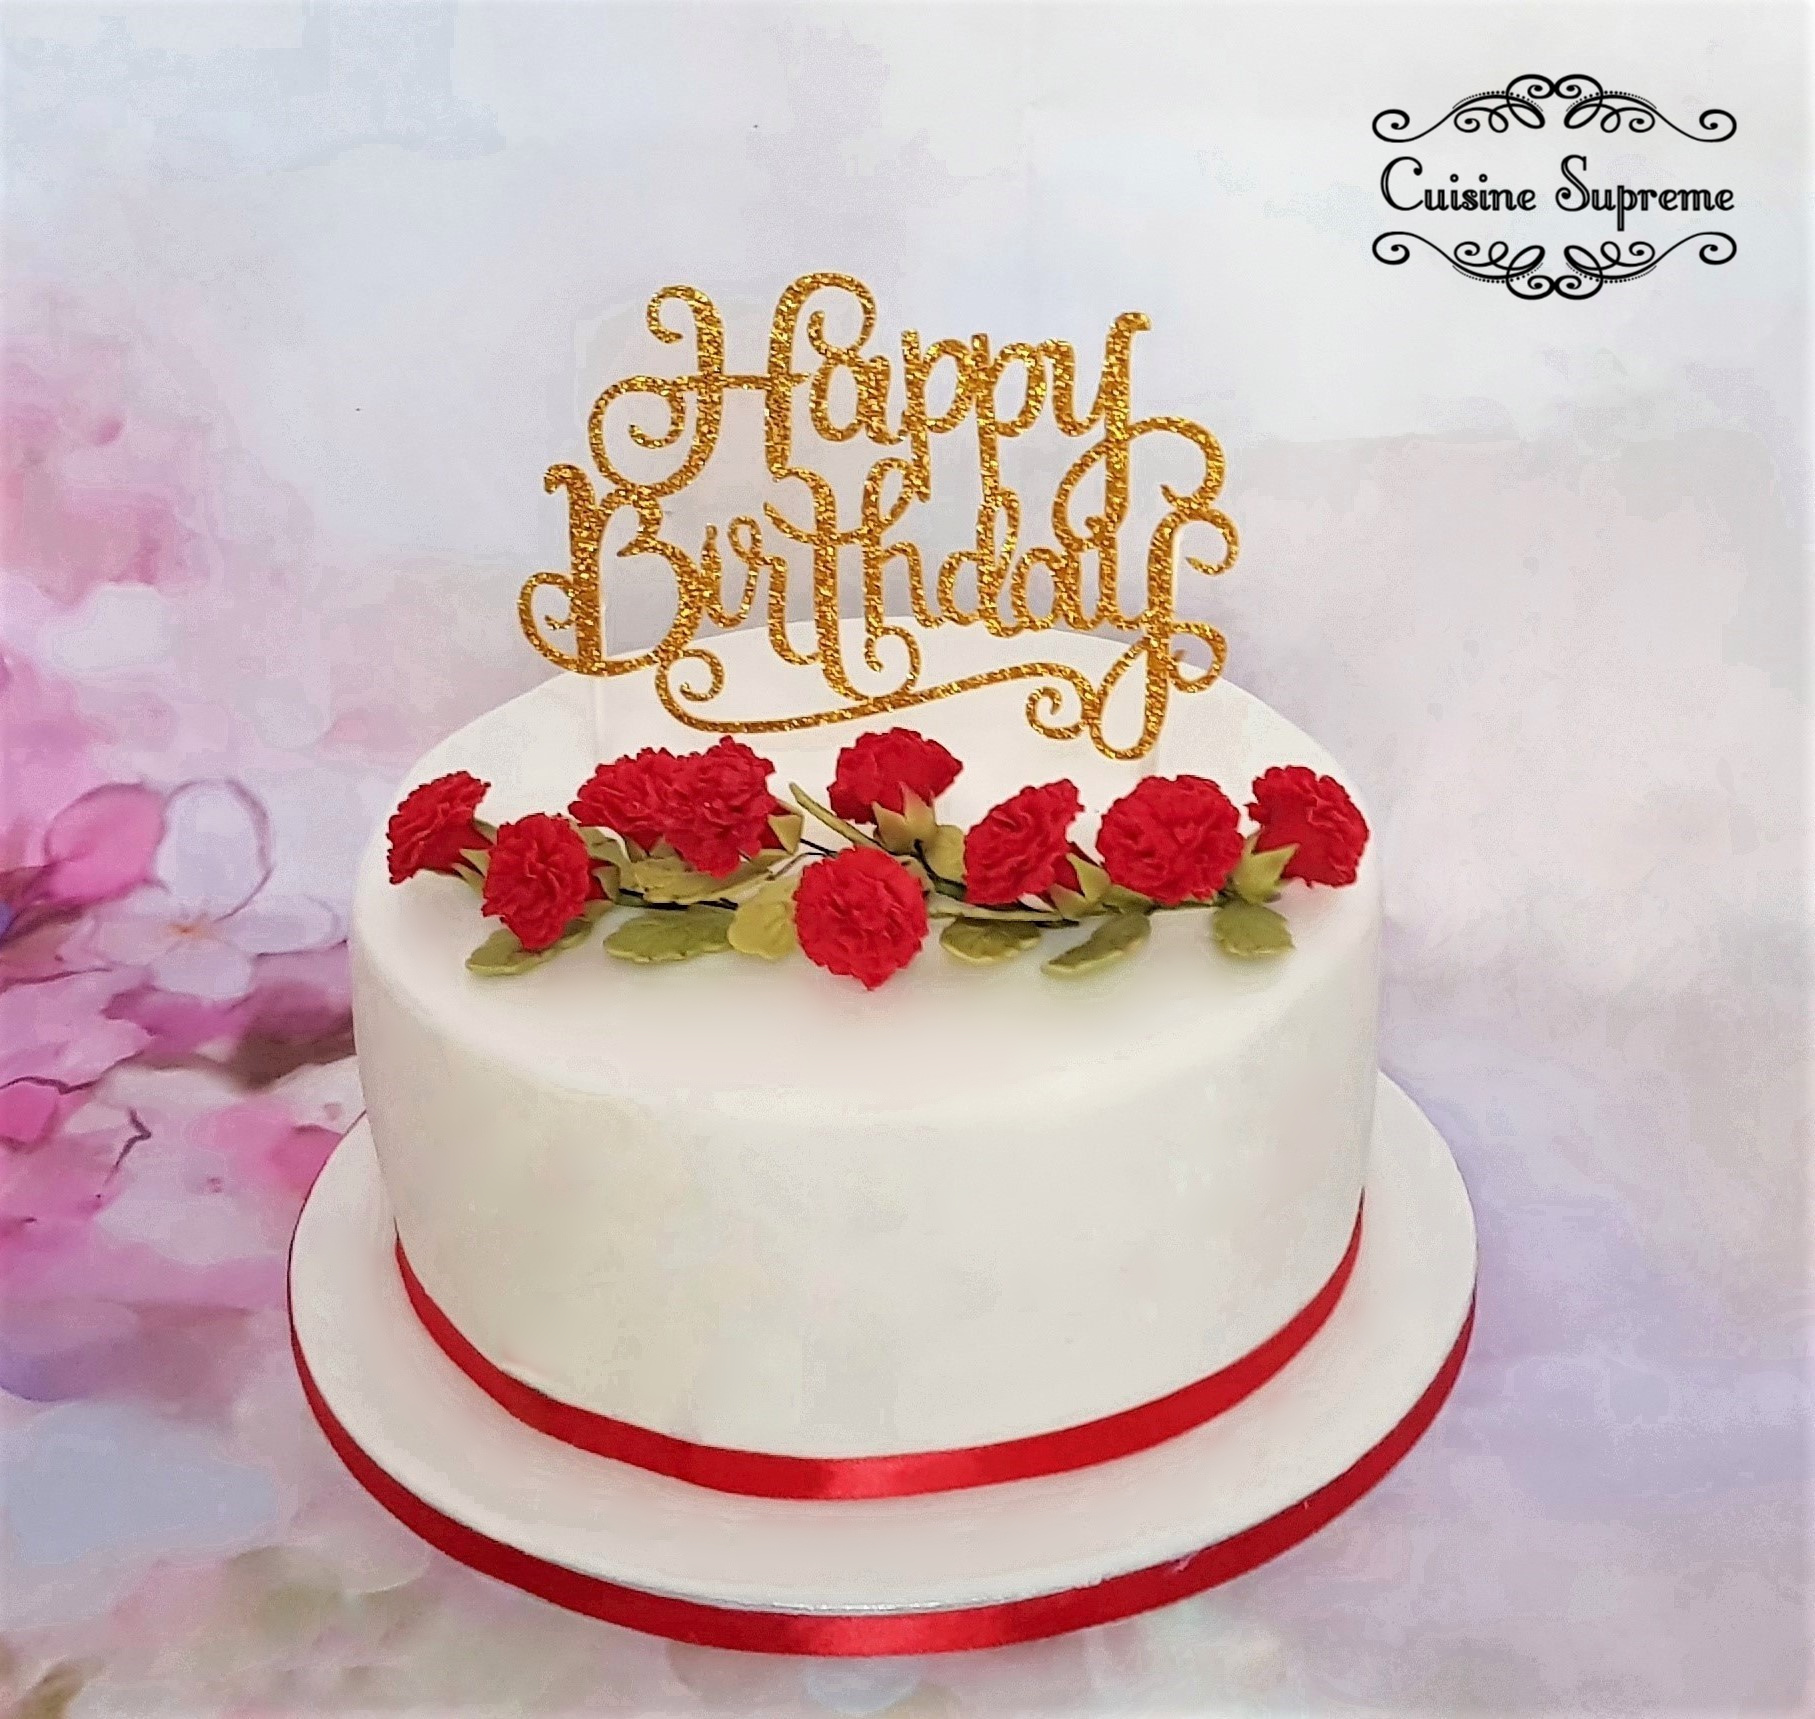 Peachy Cakes For Women Greater London Cuisine Supreme Funny Birthday Cards Online Alyptdamsfinfo